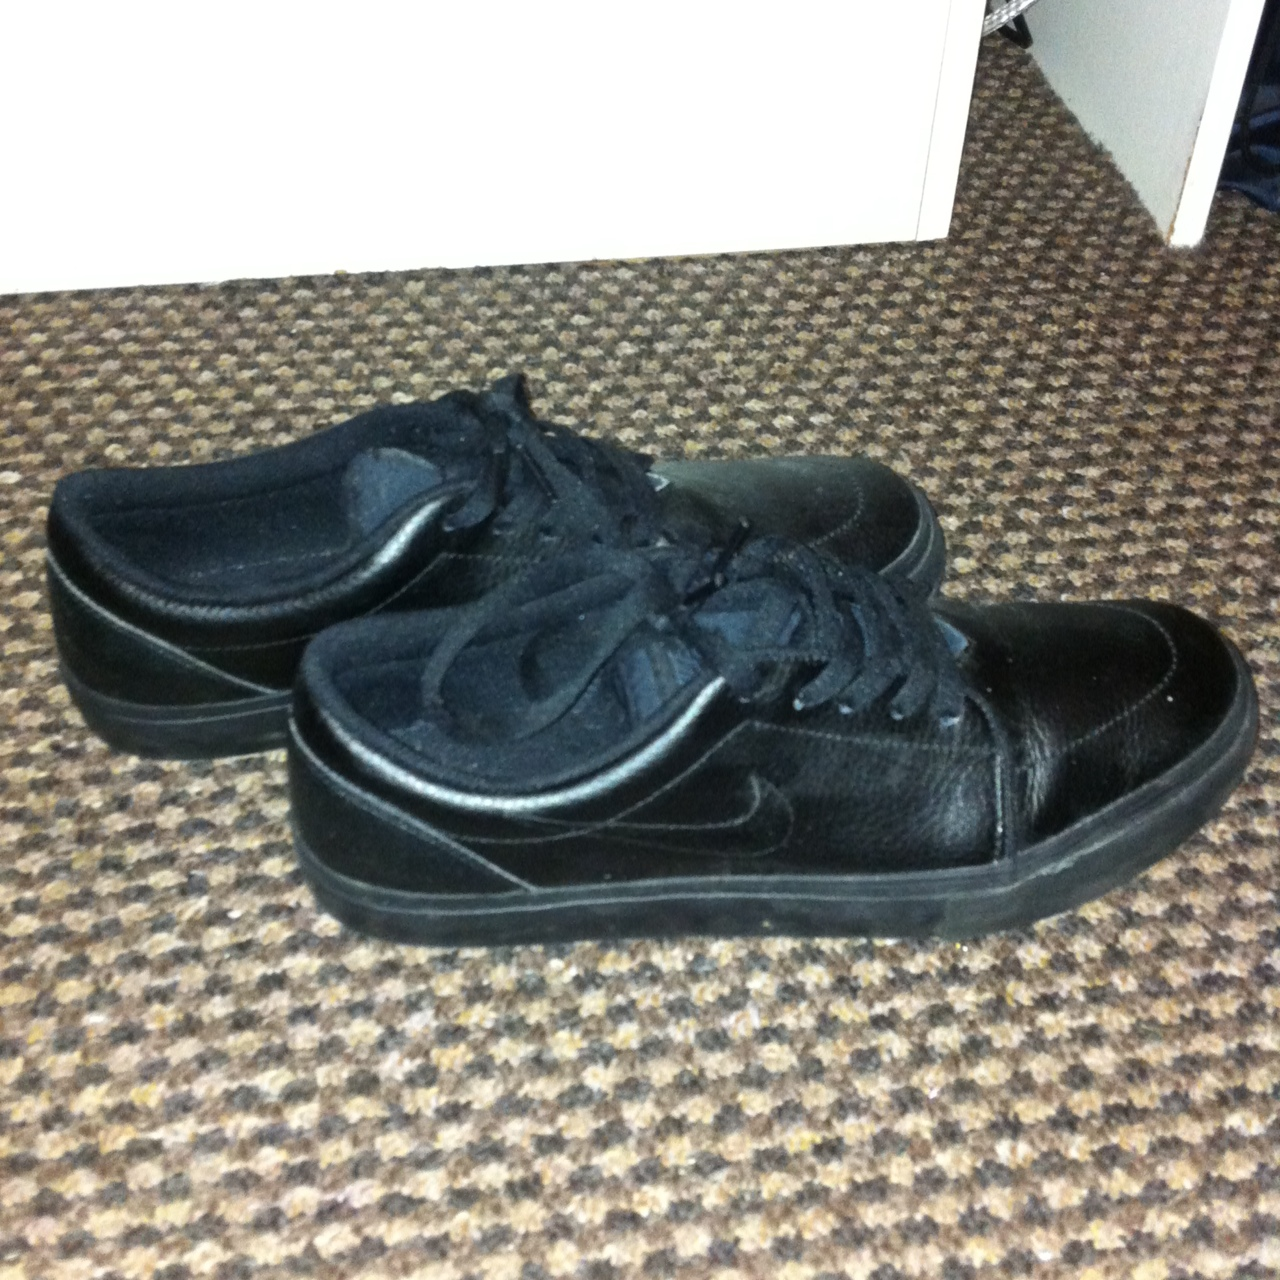 Nike Sb Satire Leather All Black Worn Only Depop